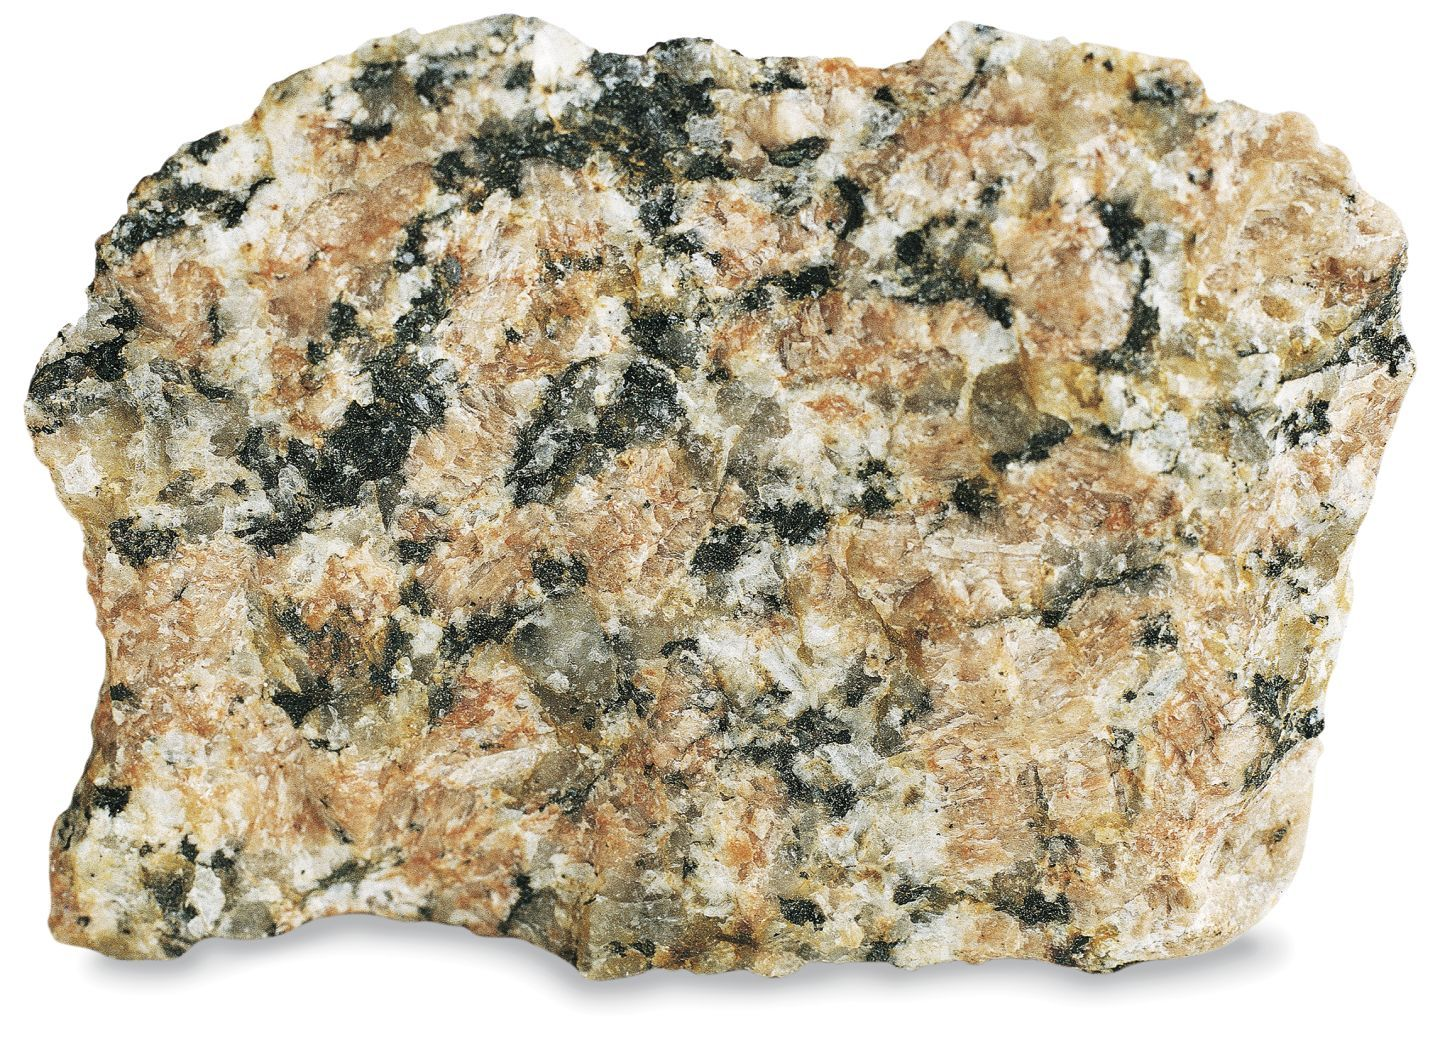 Gallery Of Igneous Rocks Igneous Rock Igneous Rocks And Minerals